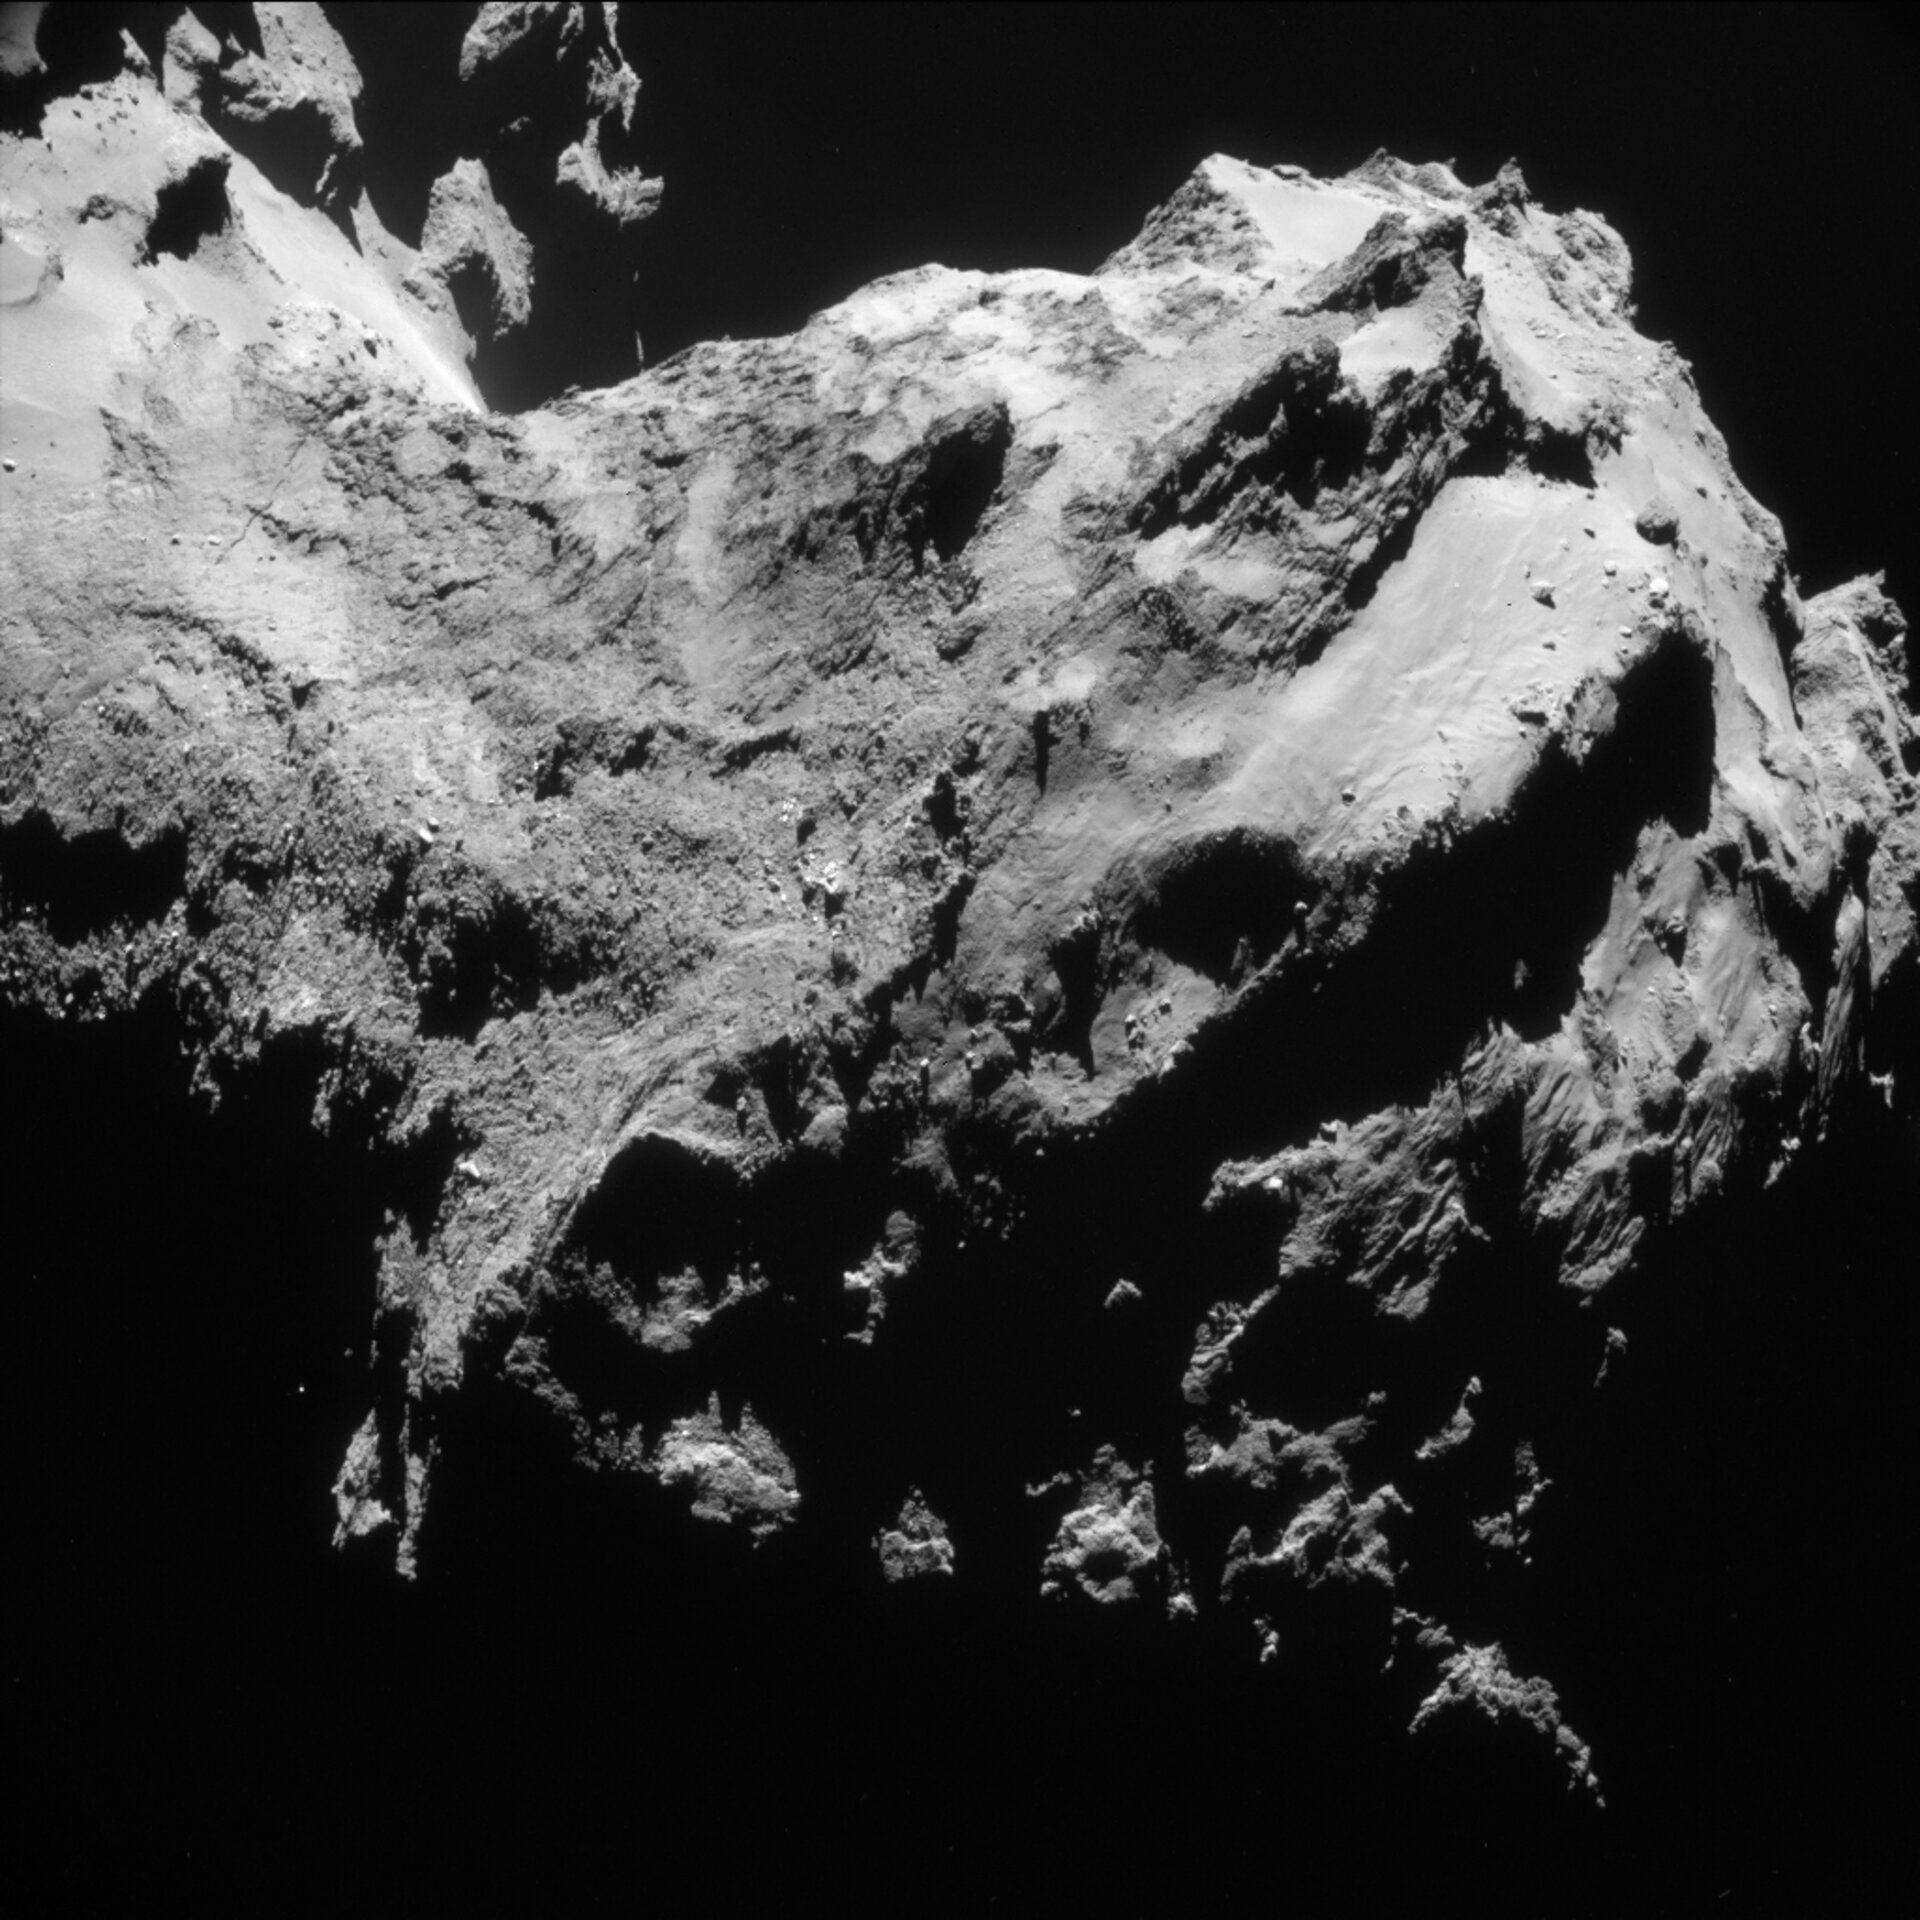 Year at a comet, September 2014